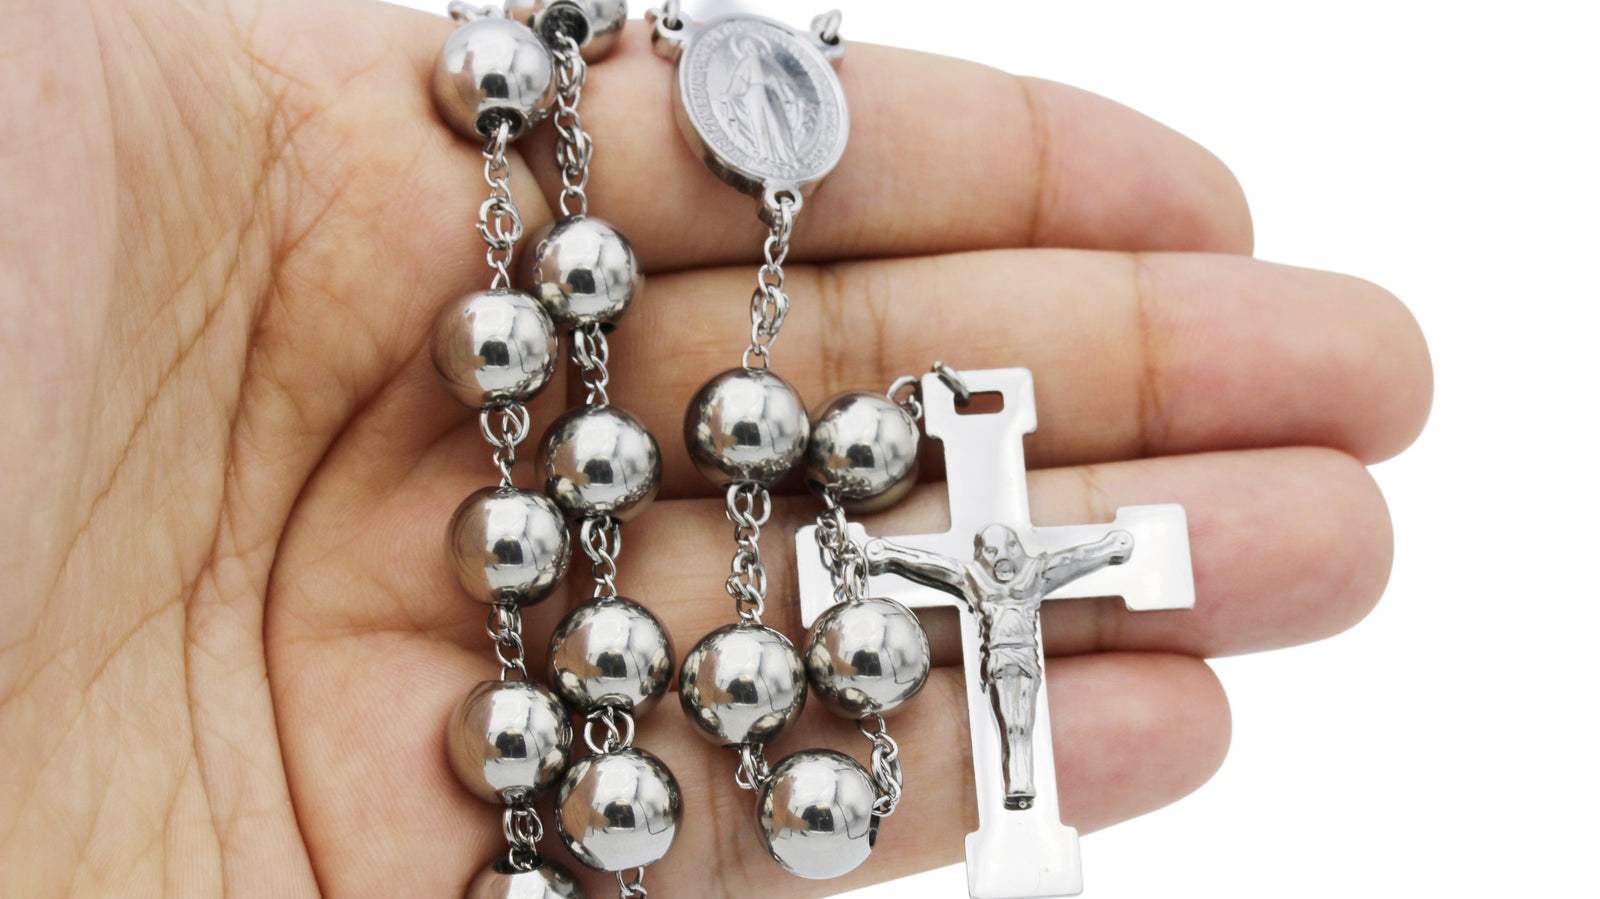 Traditional Rosary Necklace Five Decade Stainless Steel Catholic Prayer Beads (Silver) 10mm